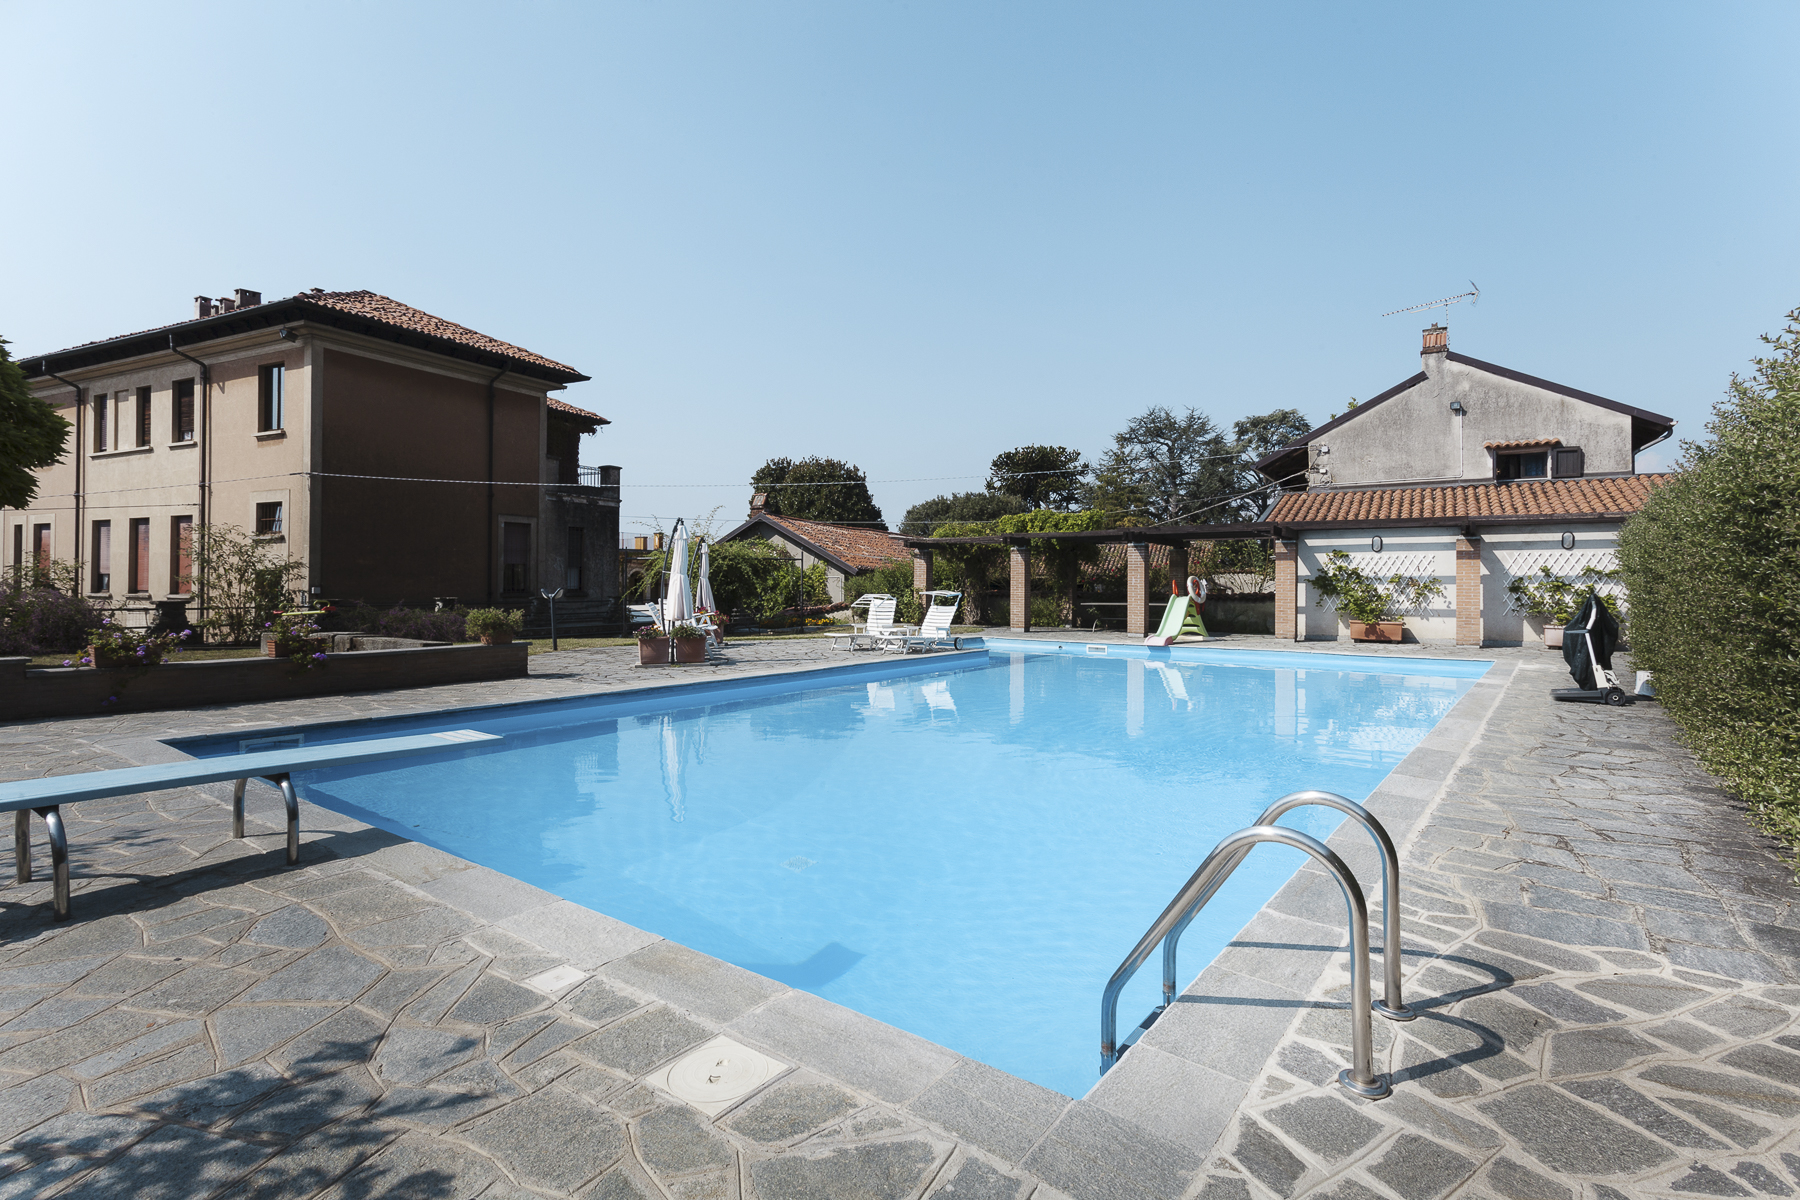 Additional photo for property listing at Unique Villa with swimming pool Piazza Rampone Other Biella, Biella 13883 Italy